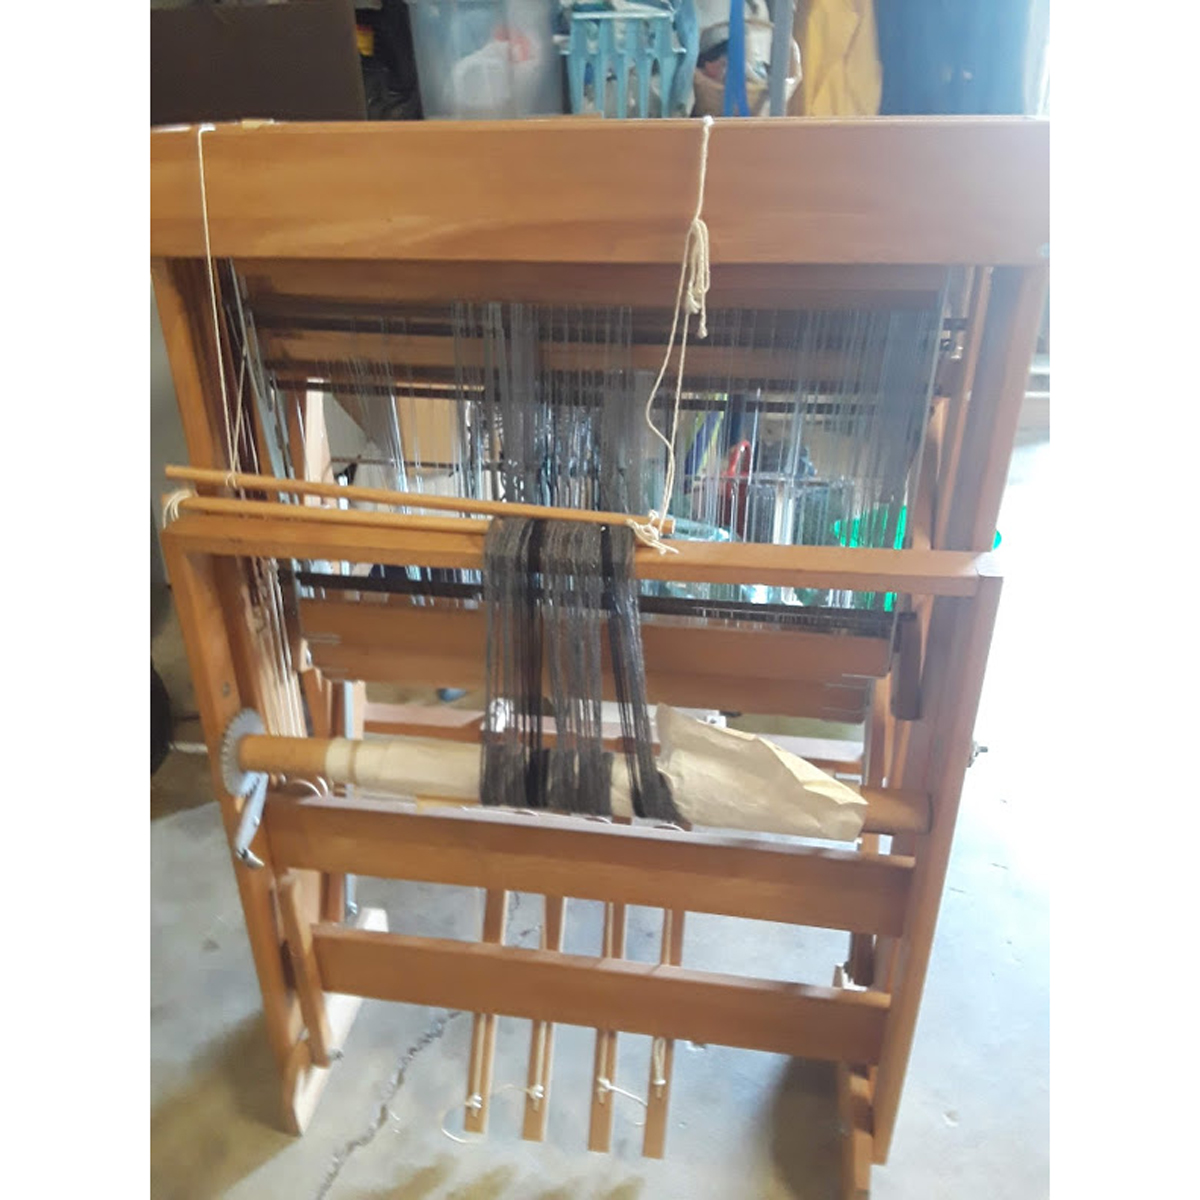 Warping a Loom